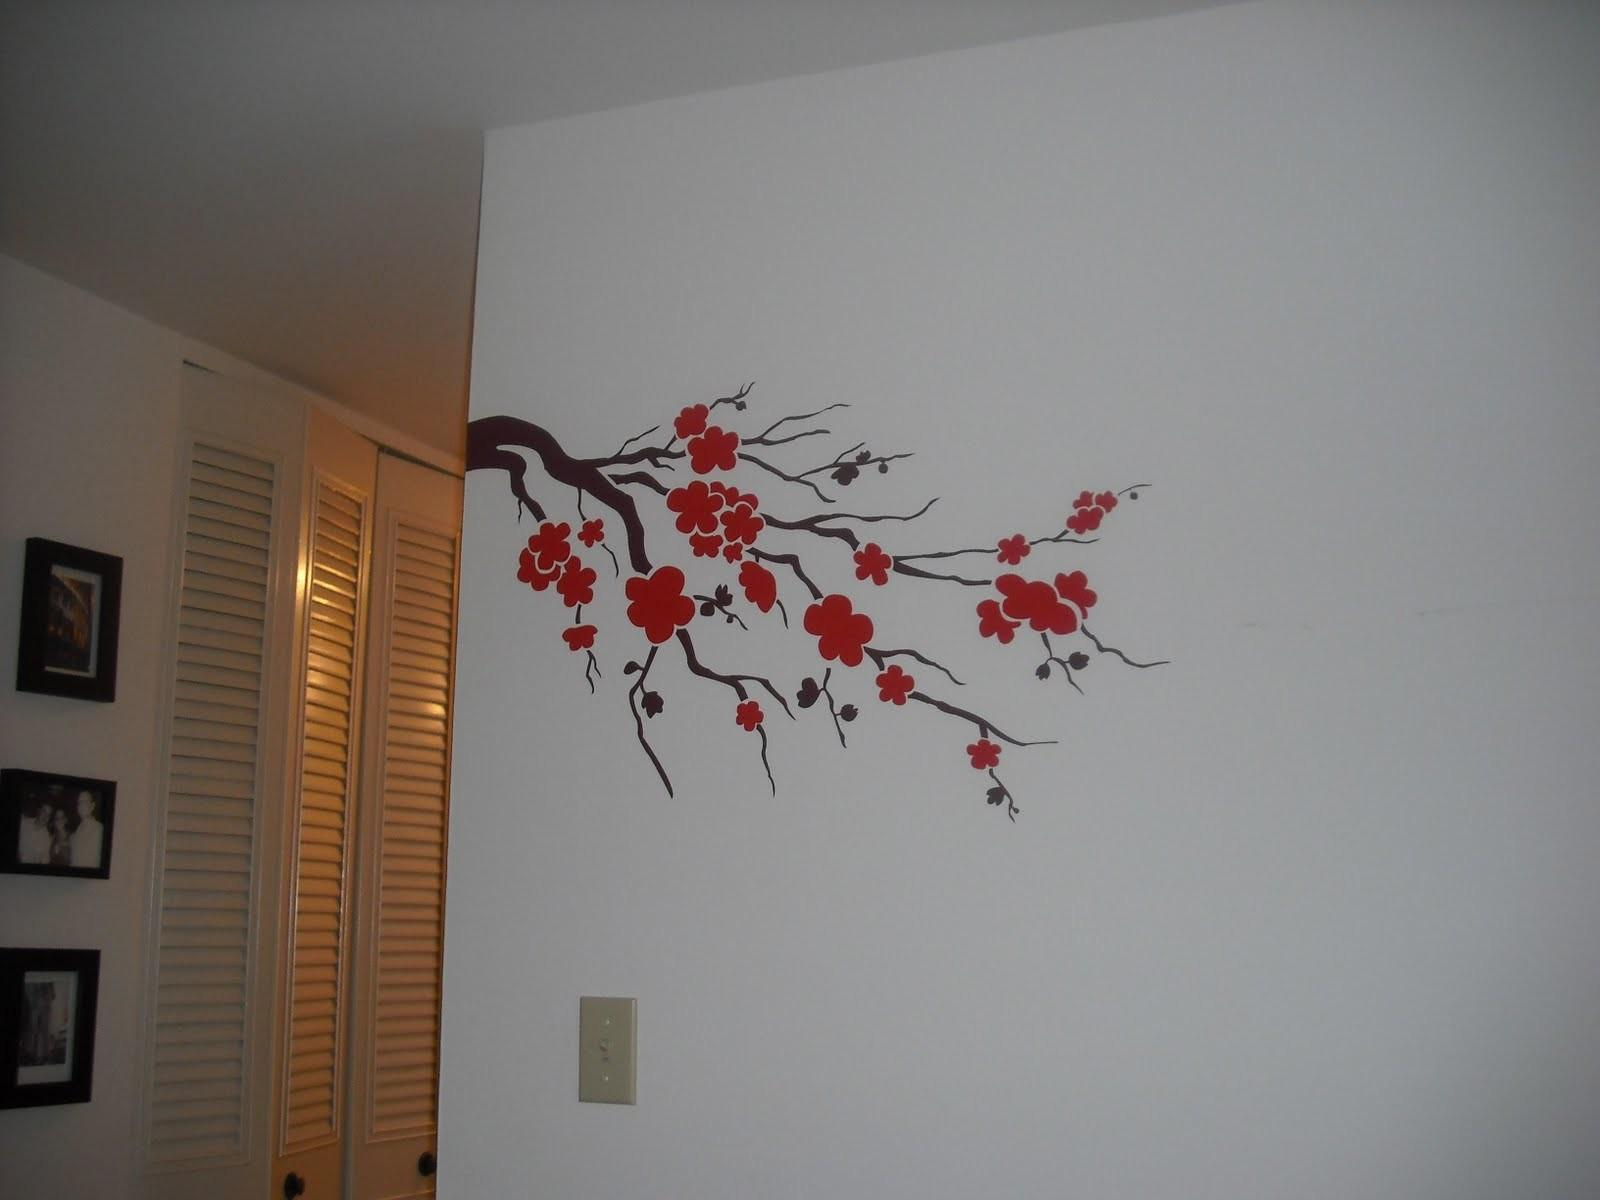 Exquisite Simple Diy Wall Artisan Decor That You Would Love To Copy With Pictures Decoratorist